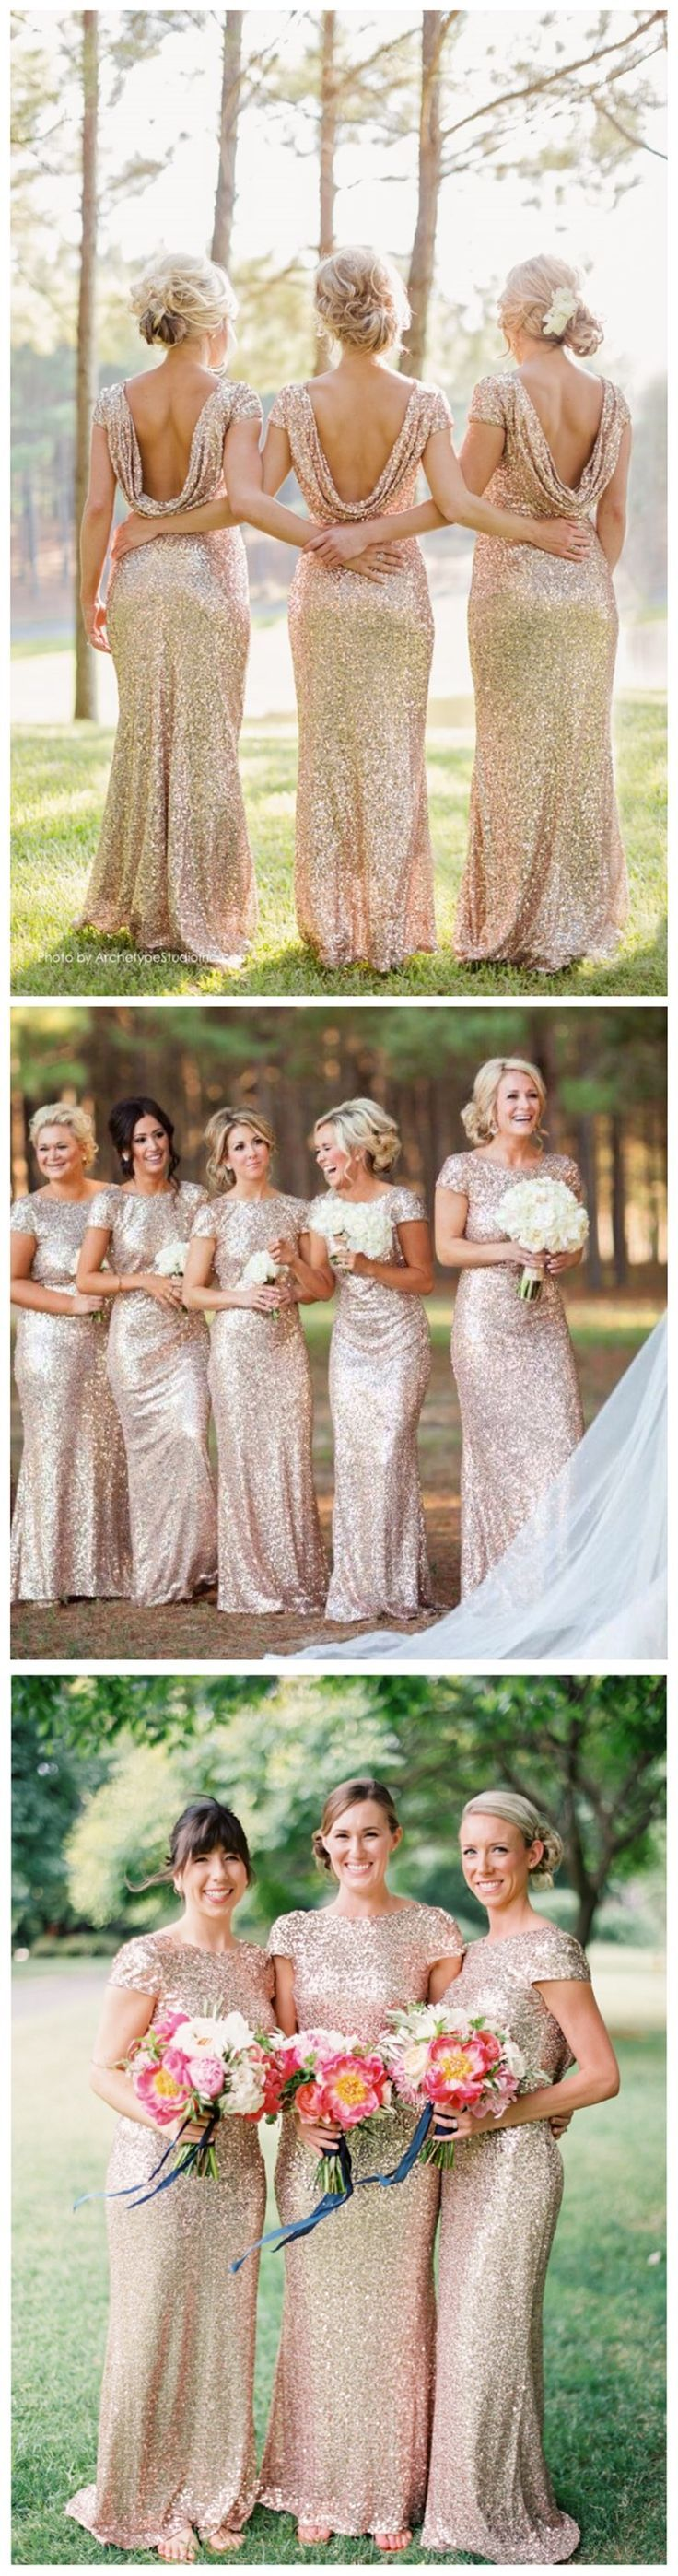 278 Best Wedding Ideas 4 14 18 Images On Pinterest Bridal